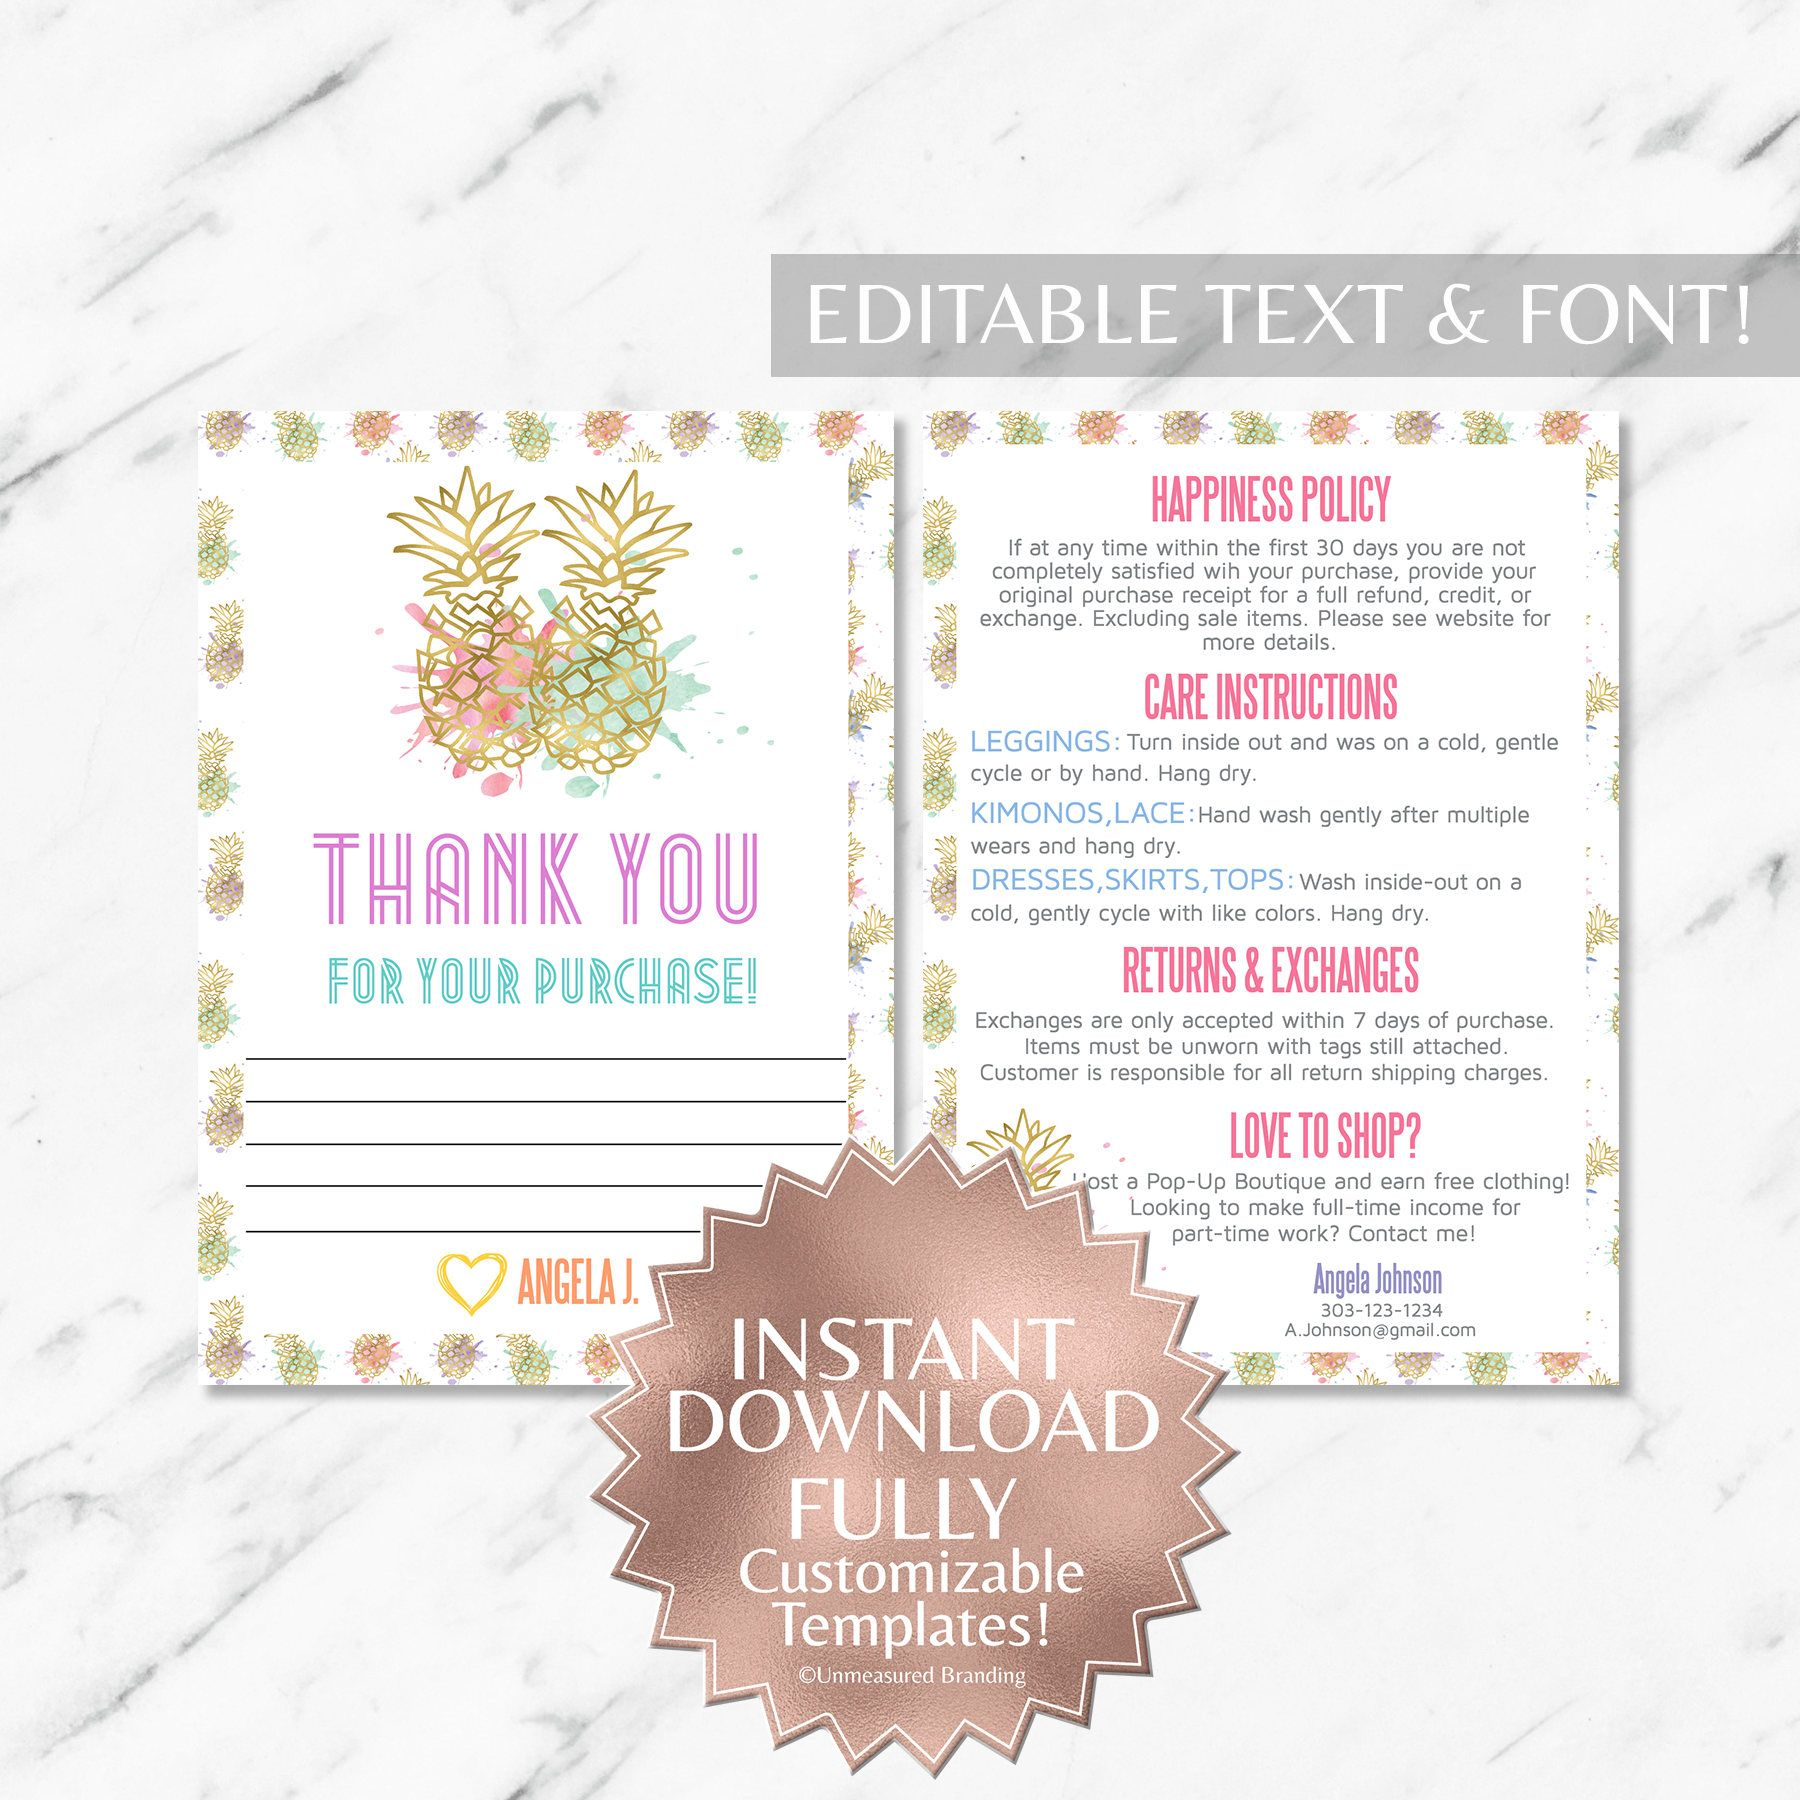 Instant Customizable Gold Pineapple Watercolor Fashion Consultant And Llr Thank You And Care Instruction Cards Templates Branding Materials Templates Watercolor Fashion